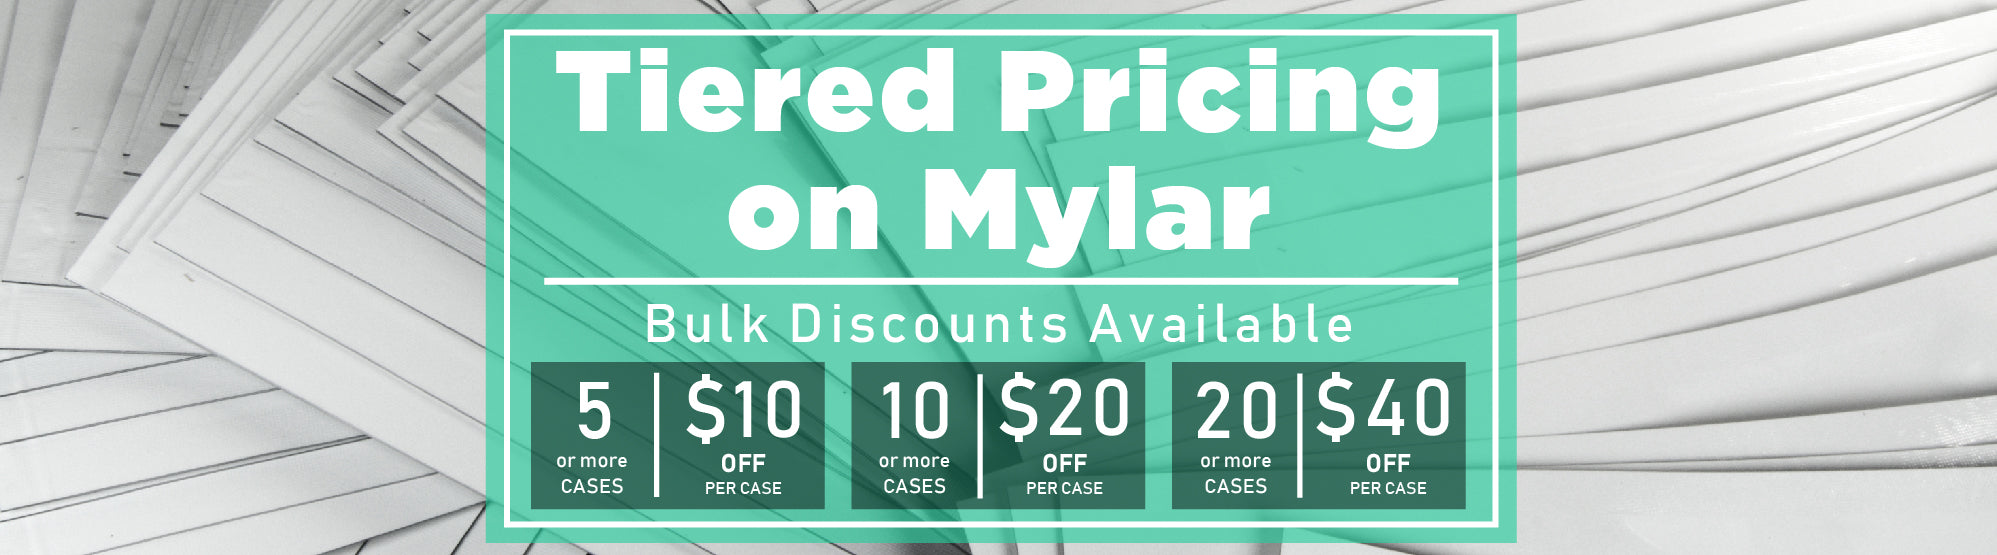 tiered pricing available on mylar